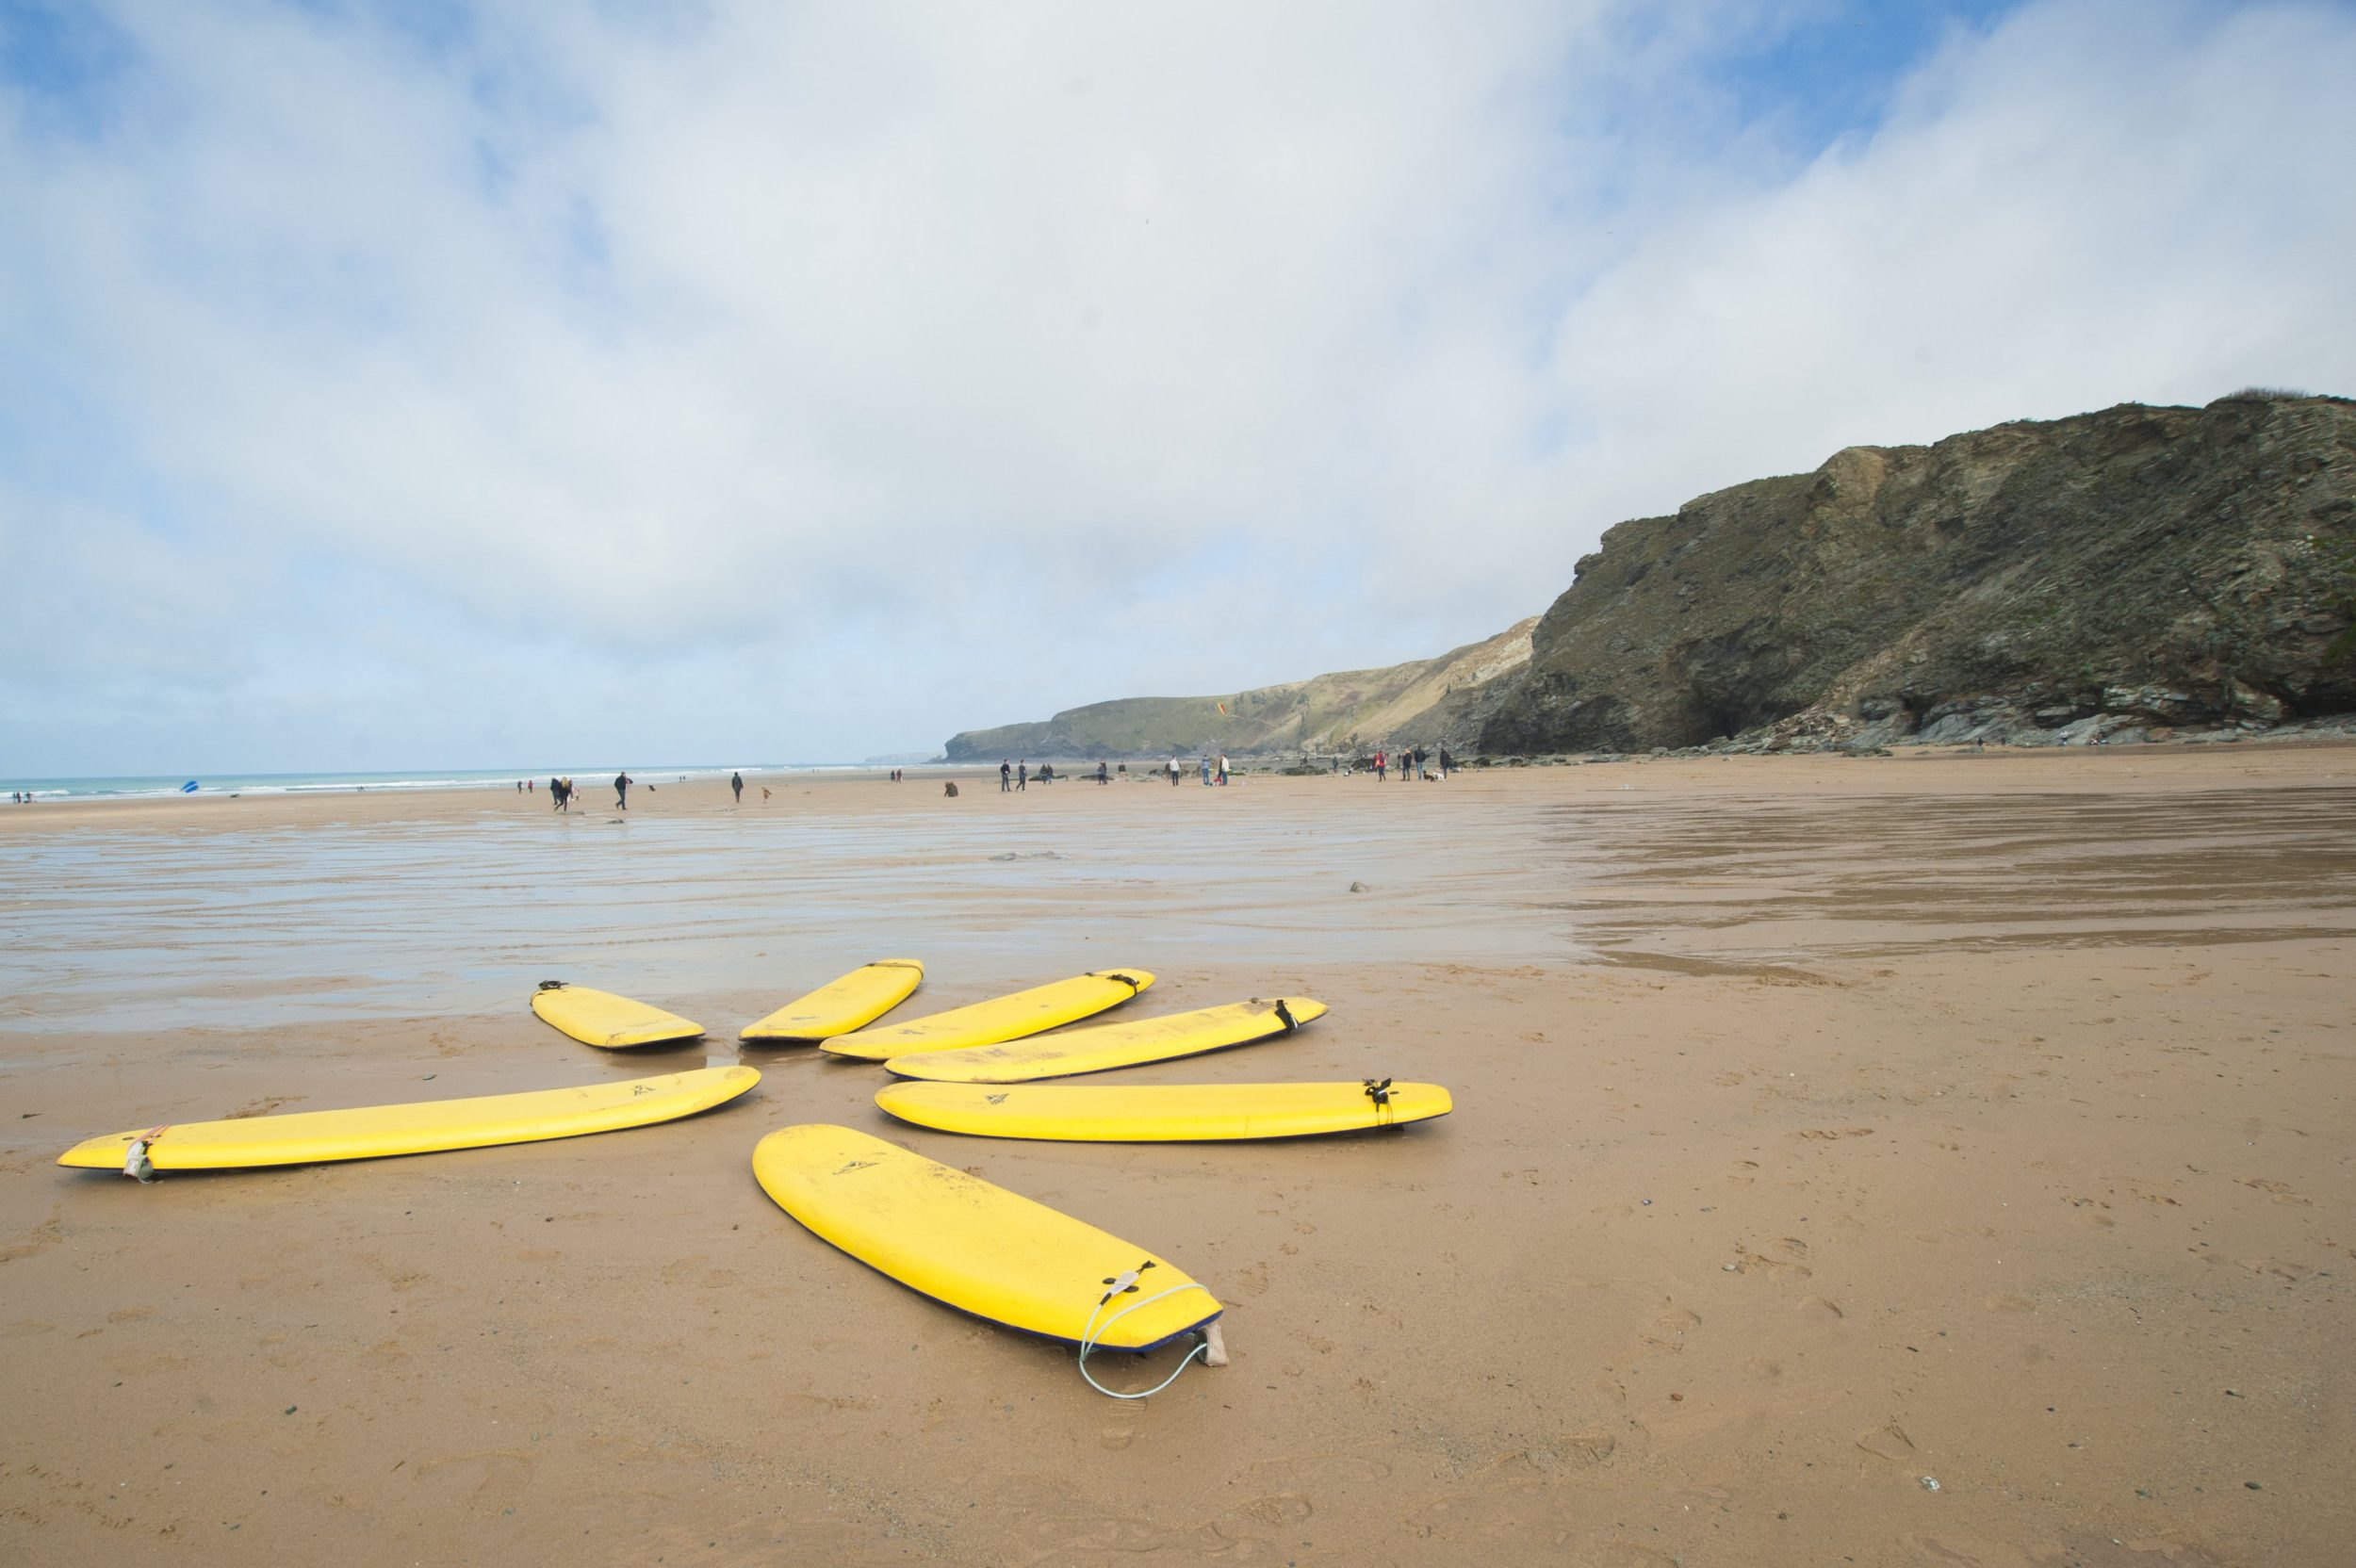 Stay at The Beach at Bude and go surfing